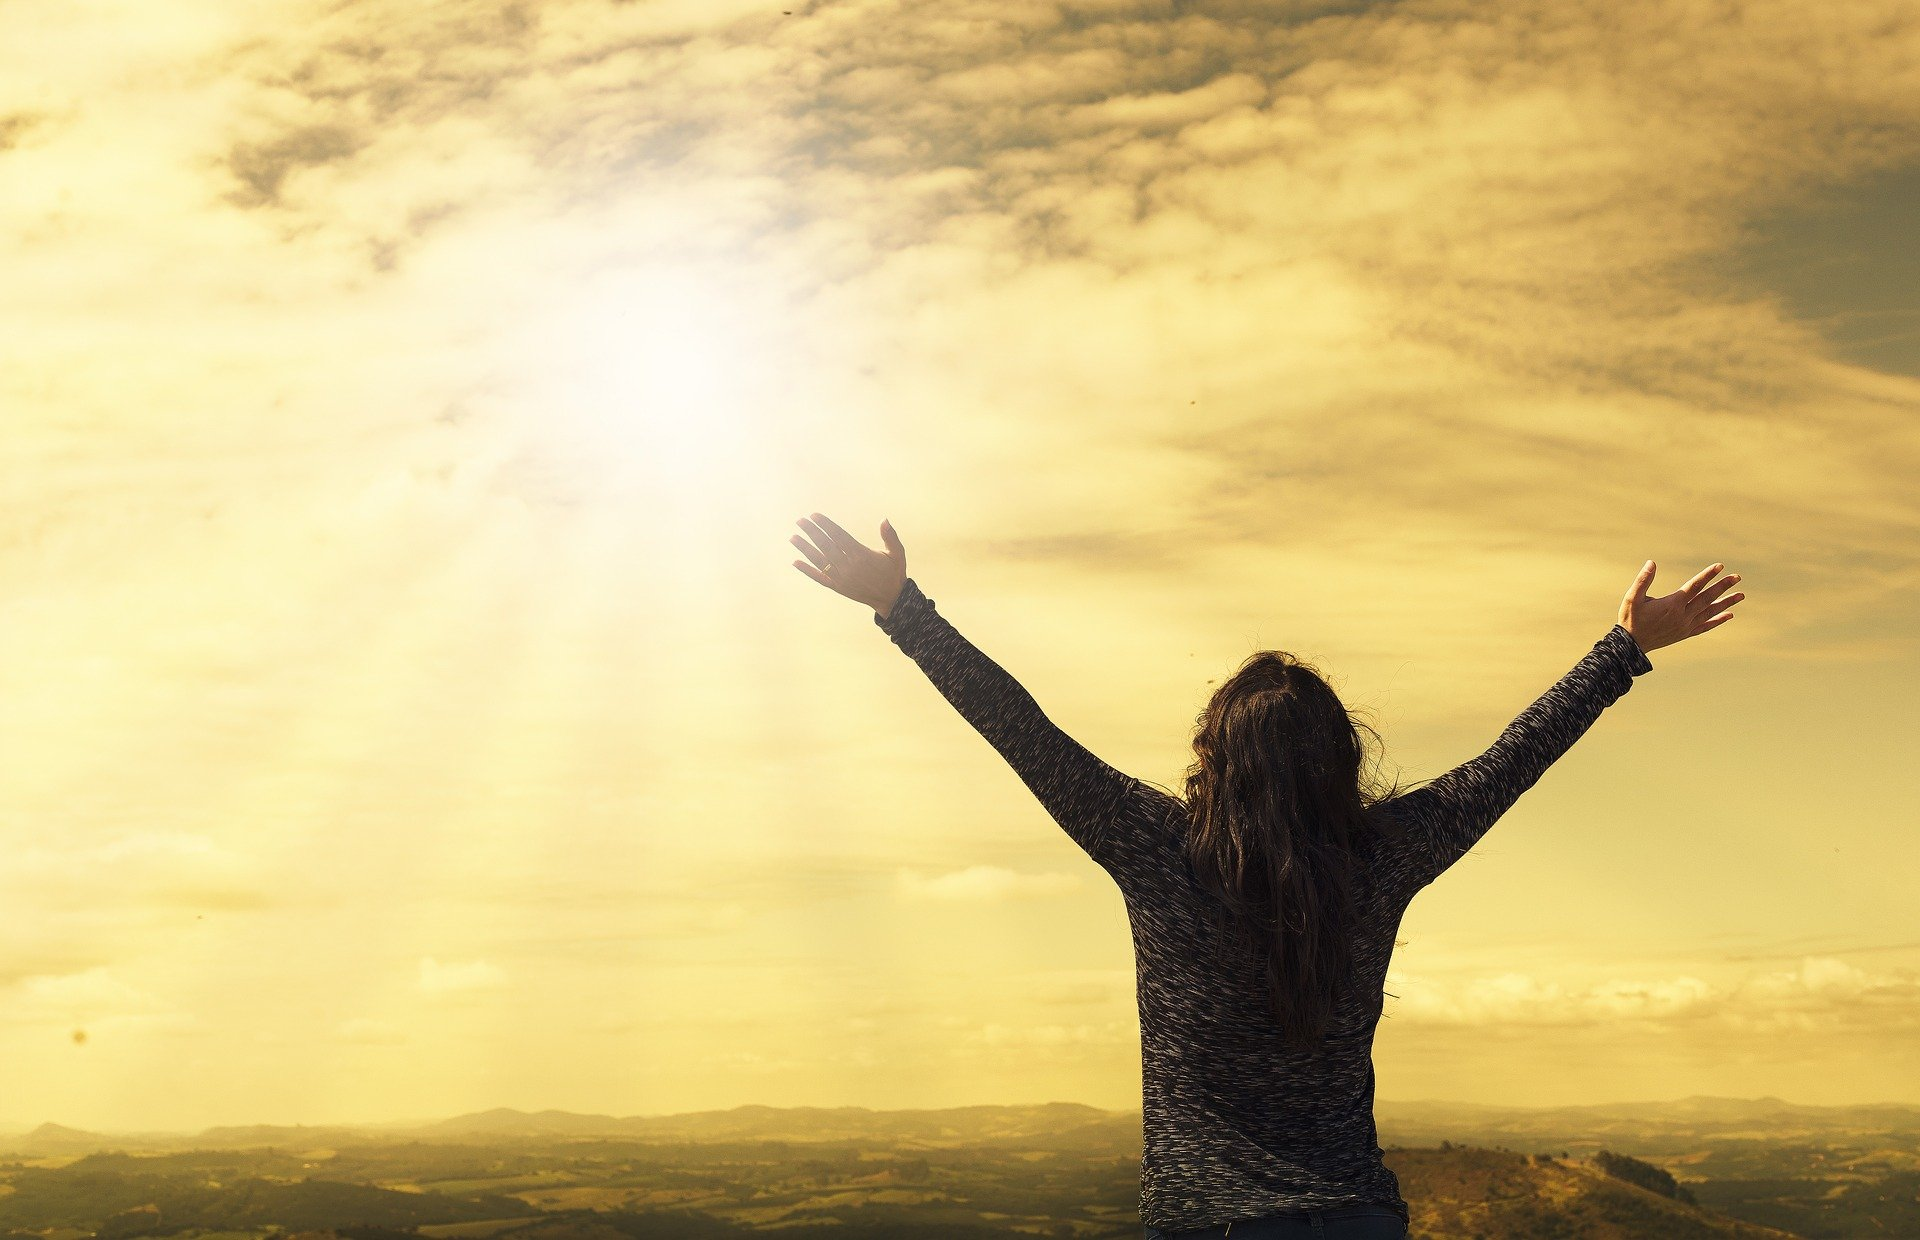 Praying with arms outstretched